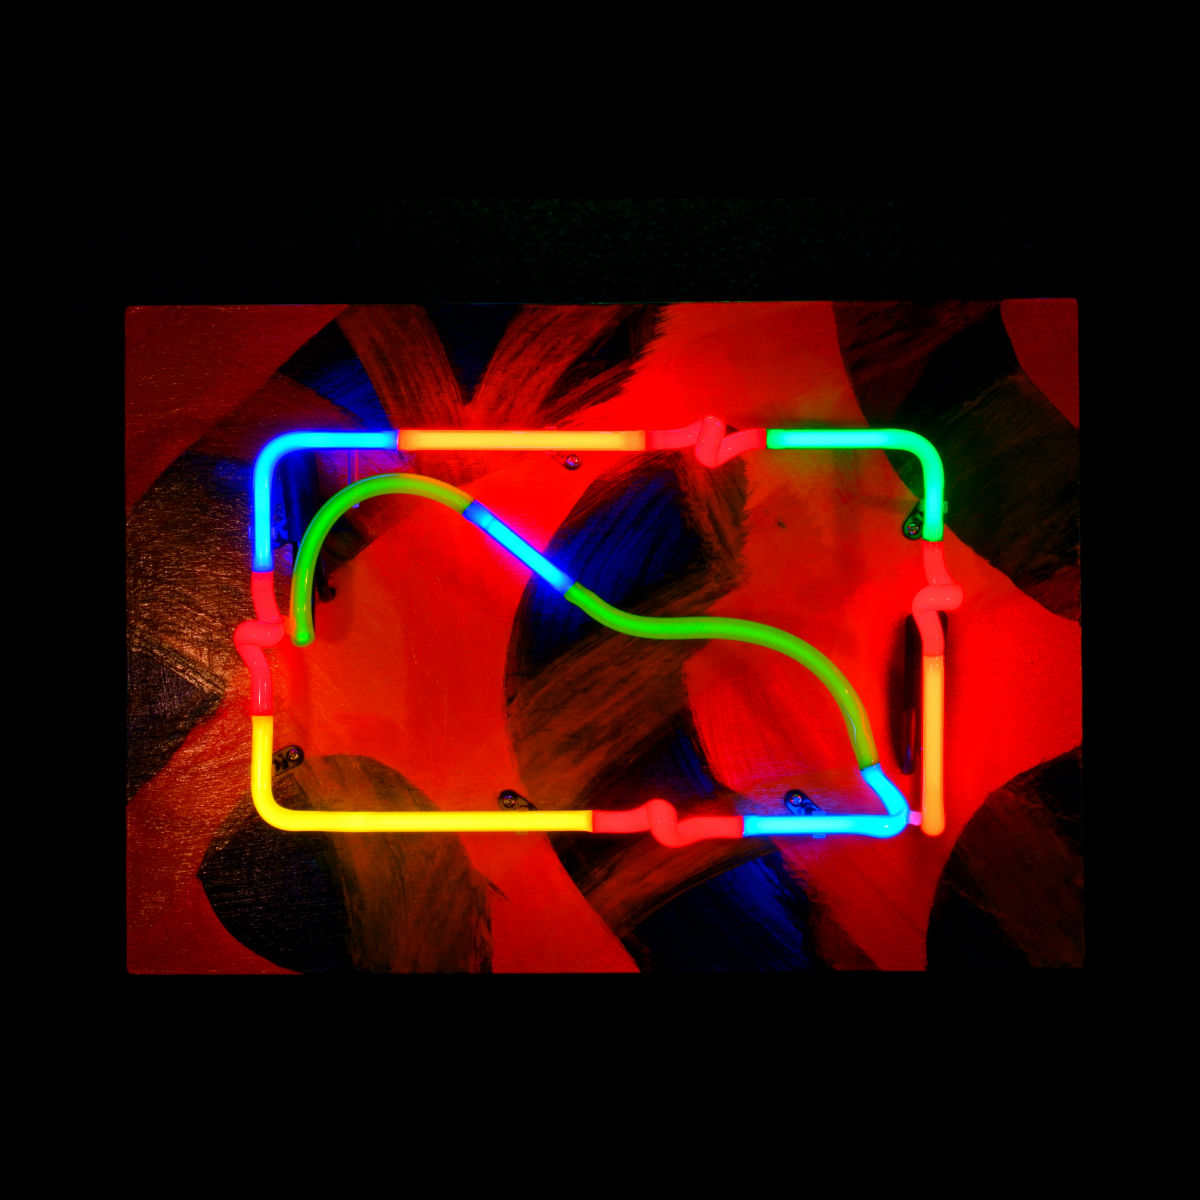 RAINFOREST Stained Glass Neon Art by John Barton - BartonNeonMagic.com